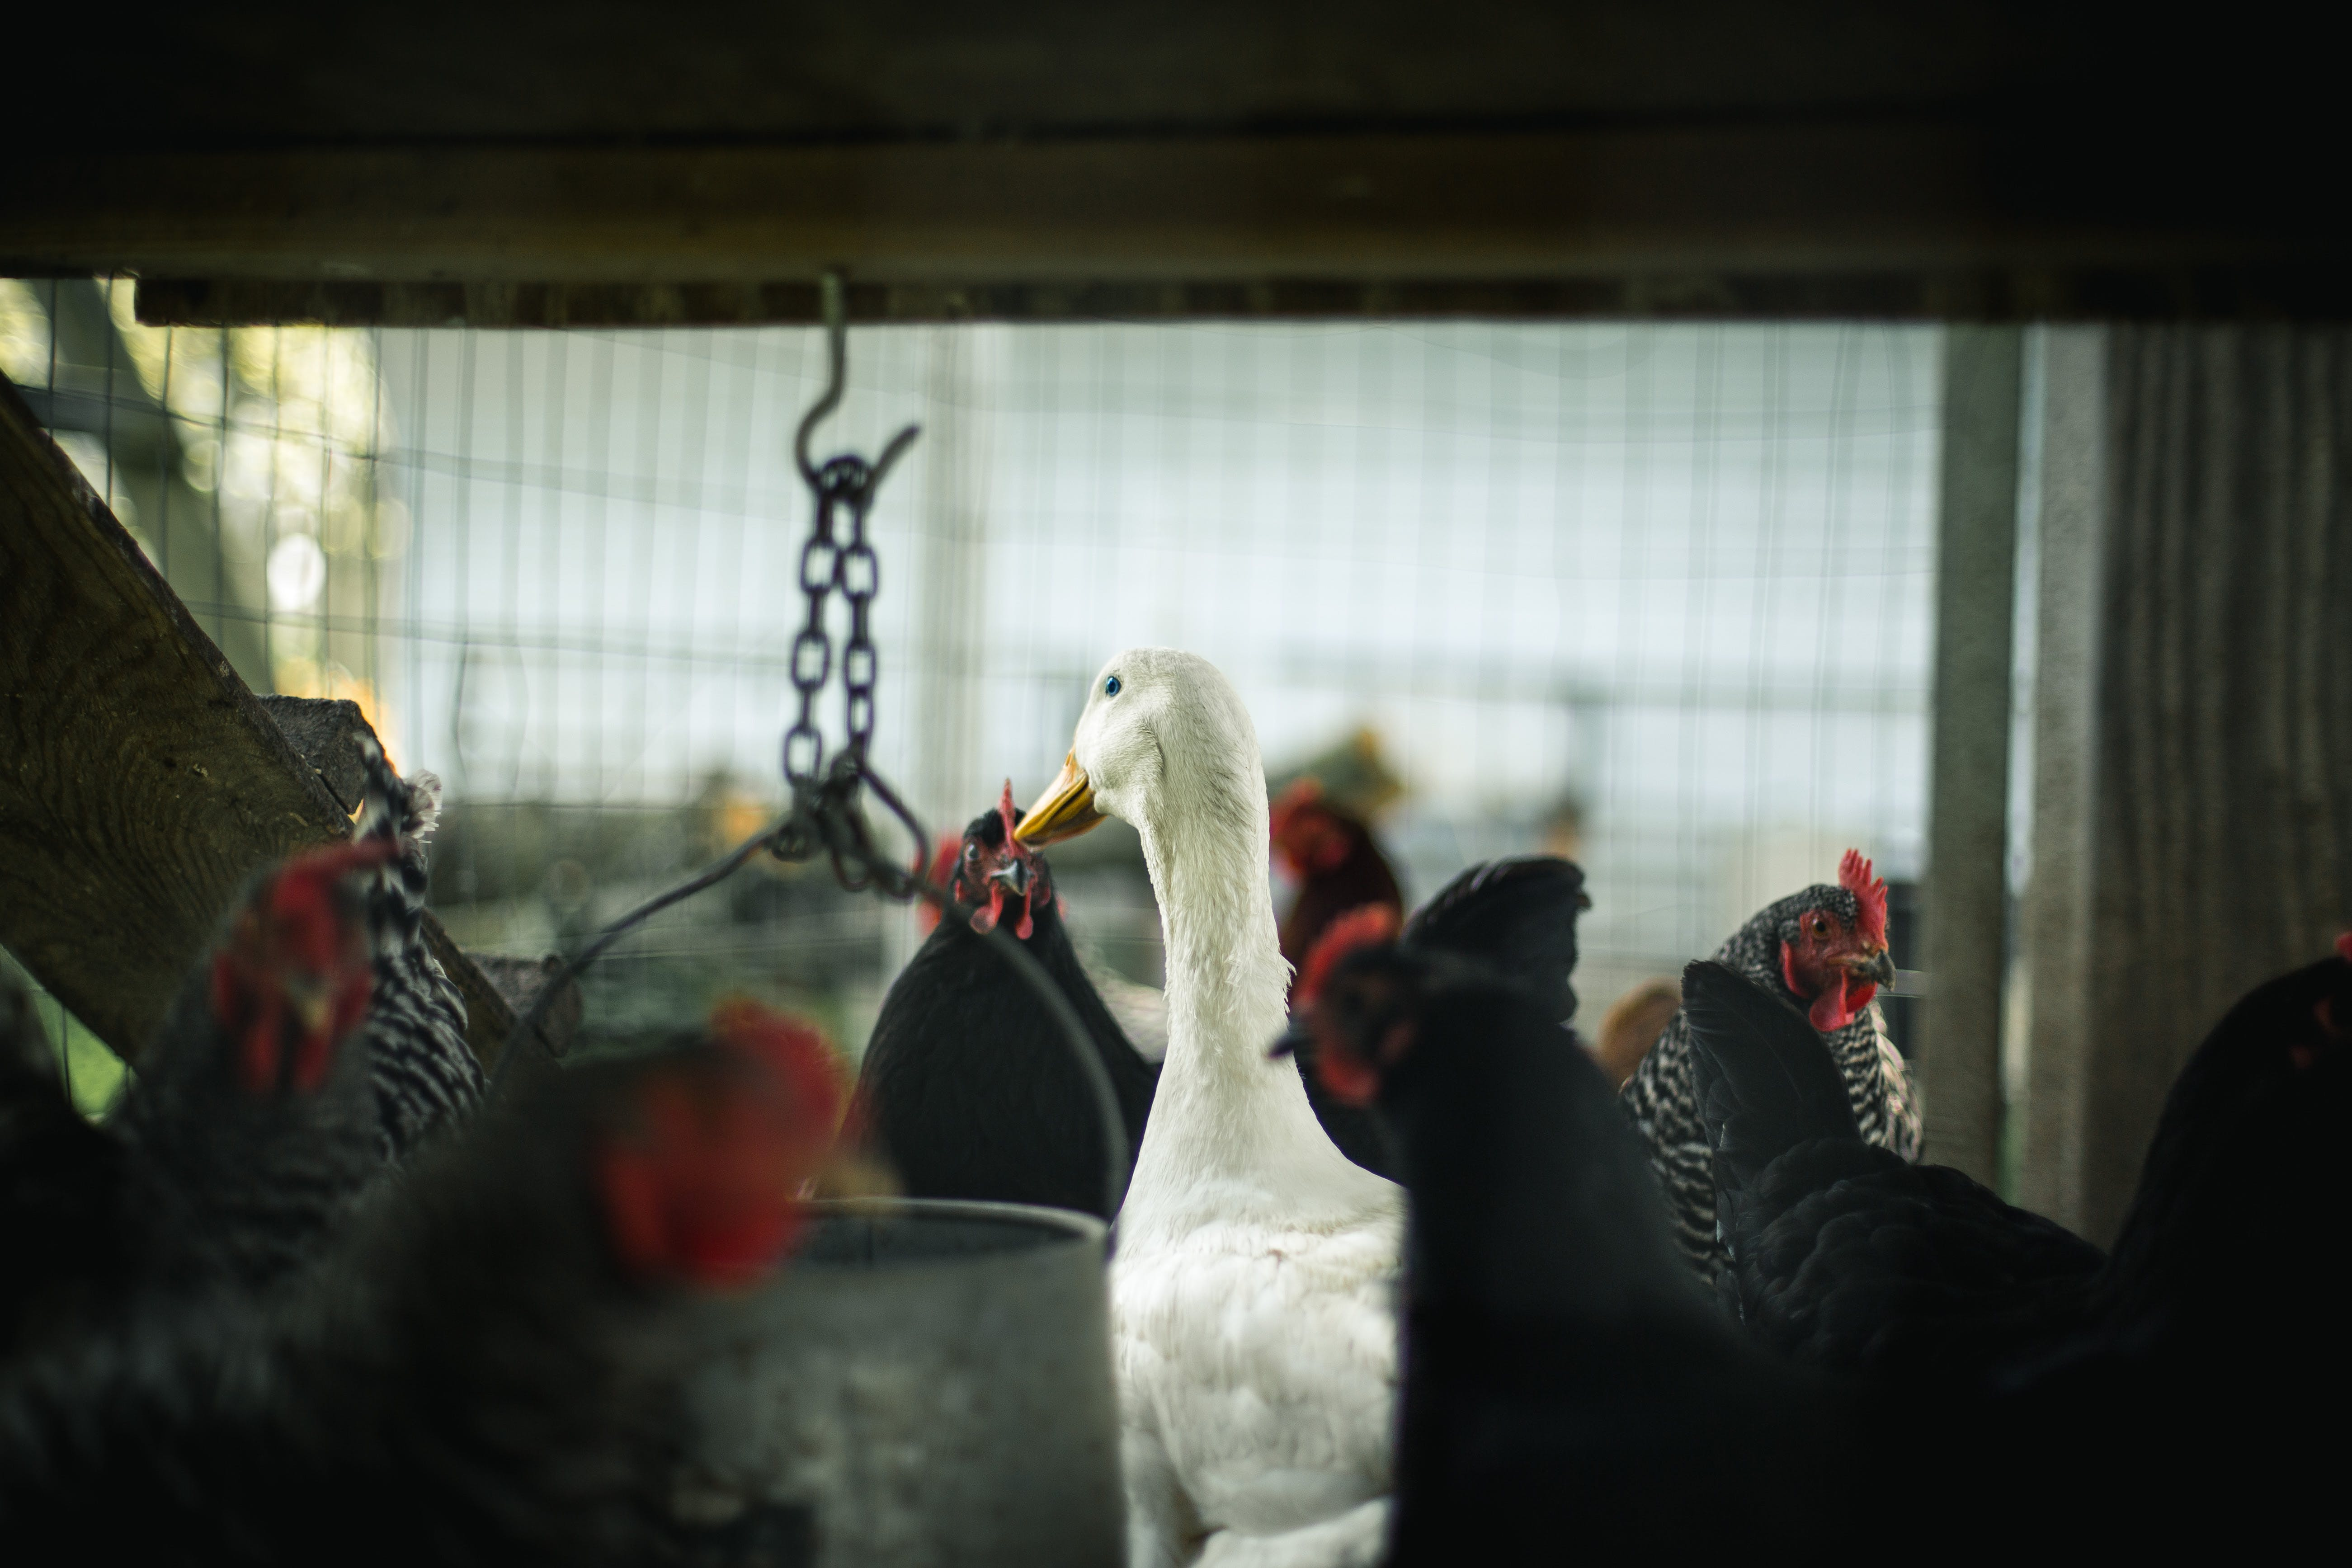 Selective Focus Photography of Flock of Roosters and White Domesticated Goose Inside the Cage